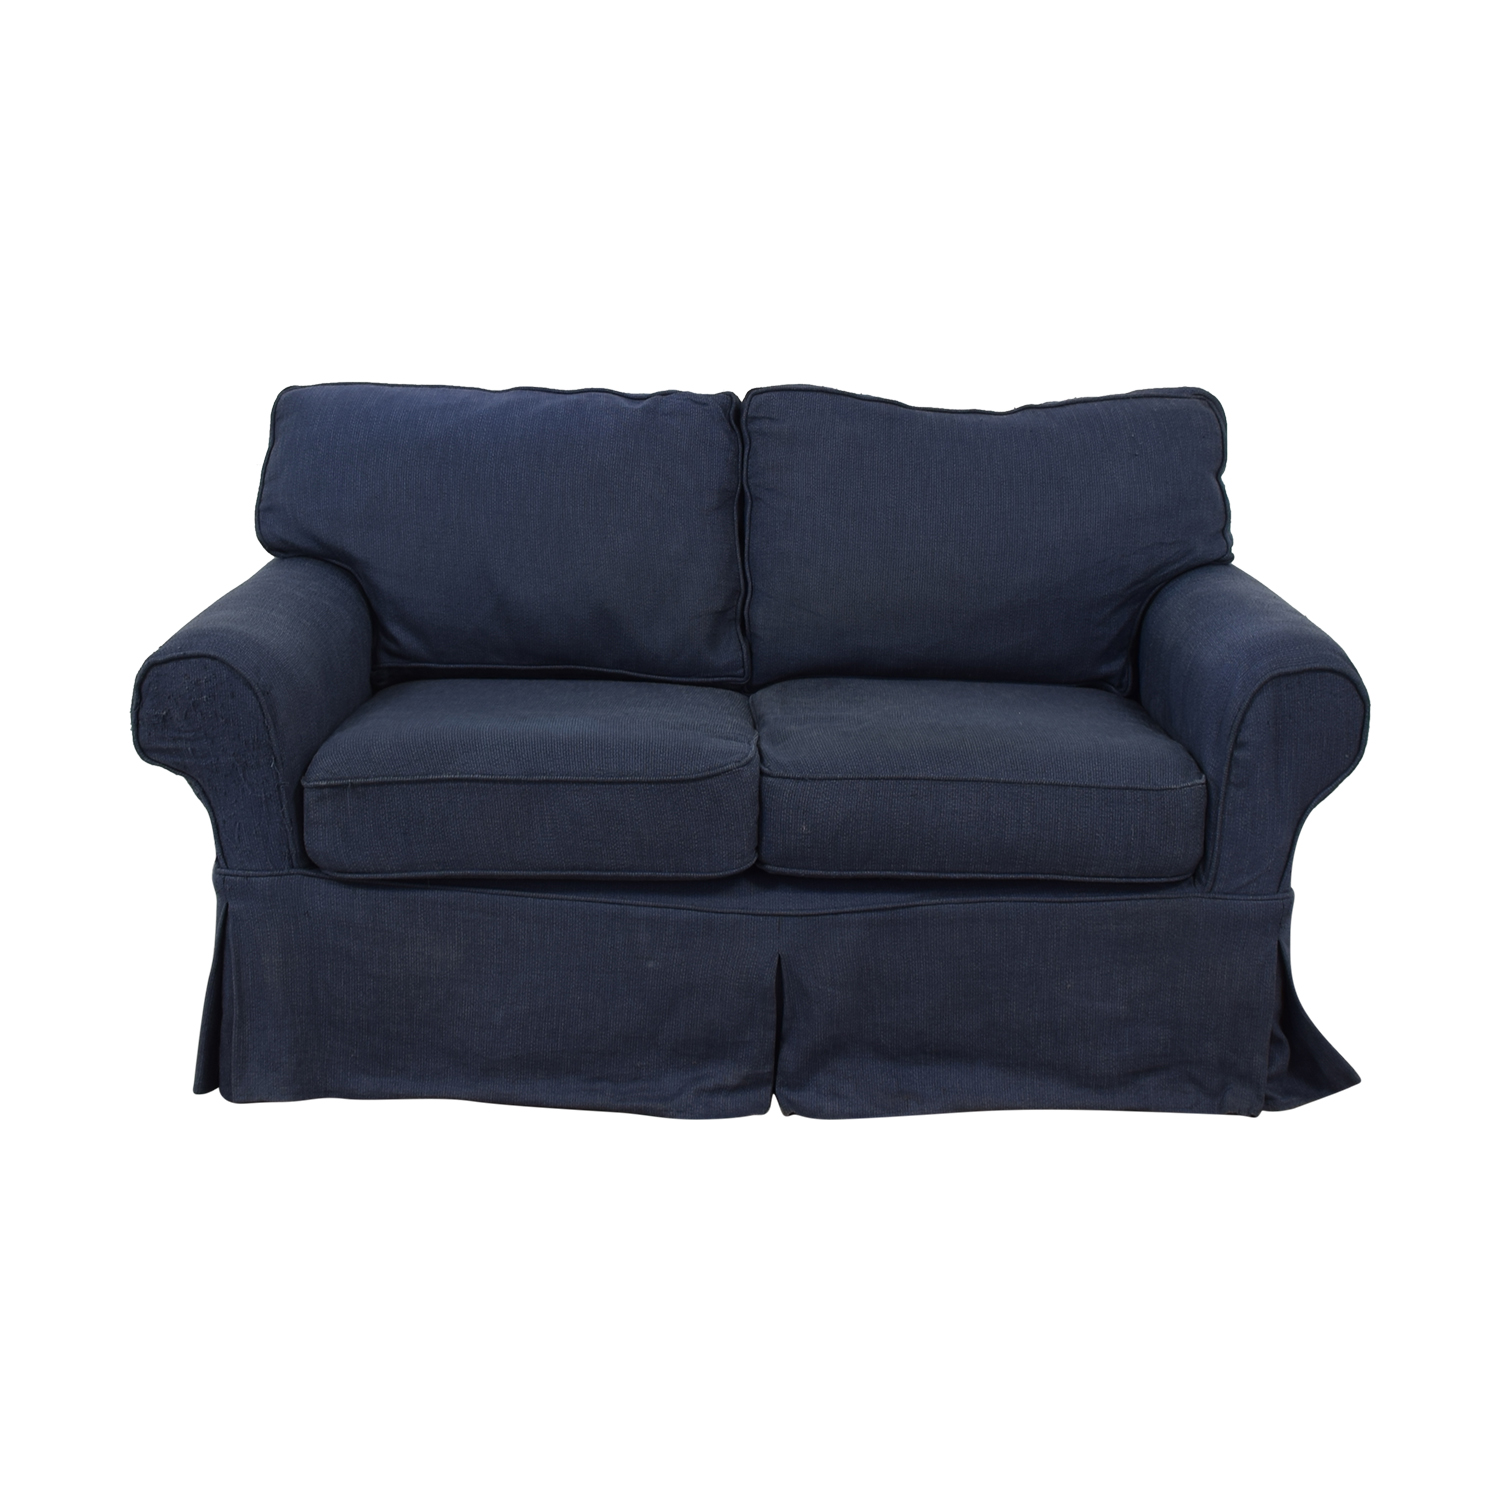 Pottery Barn Pottery Barn Comfort Blue Slipcovered Loveseat Loveseats